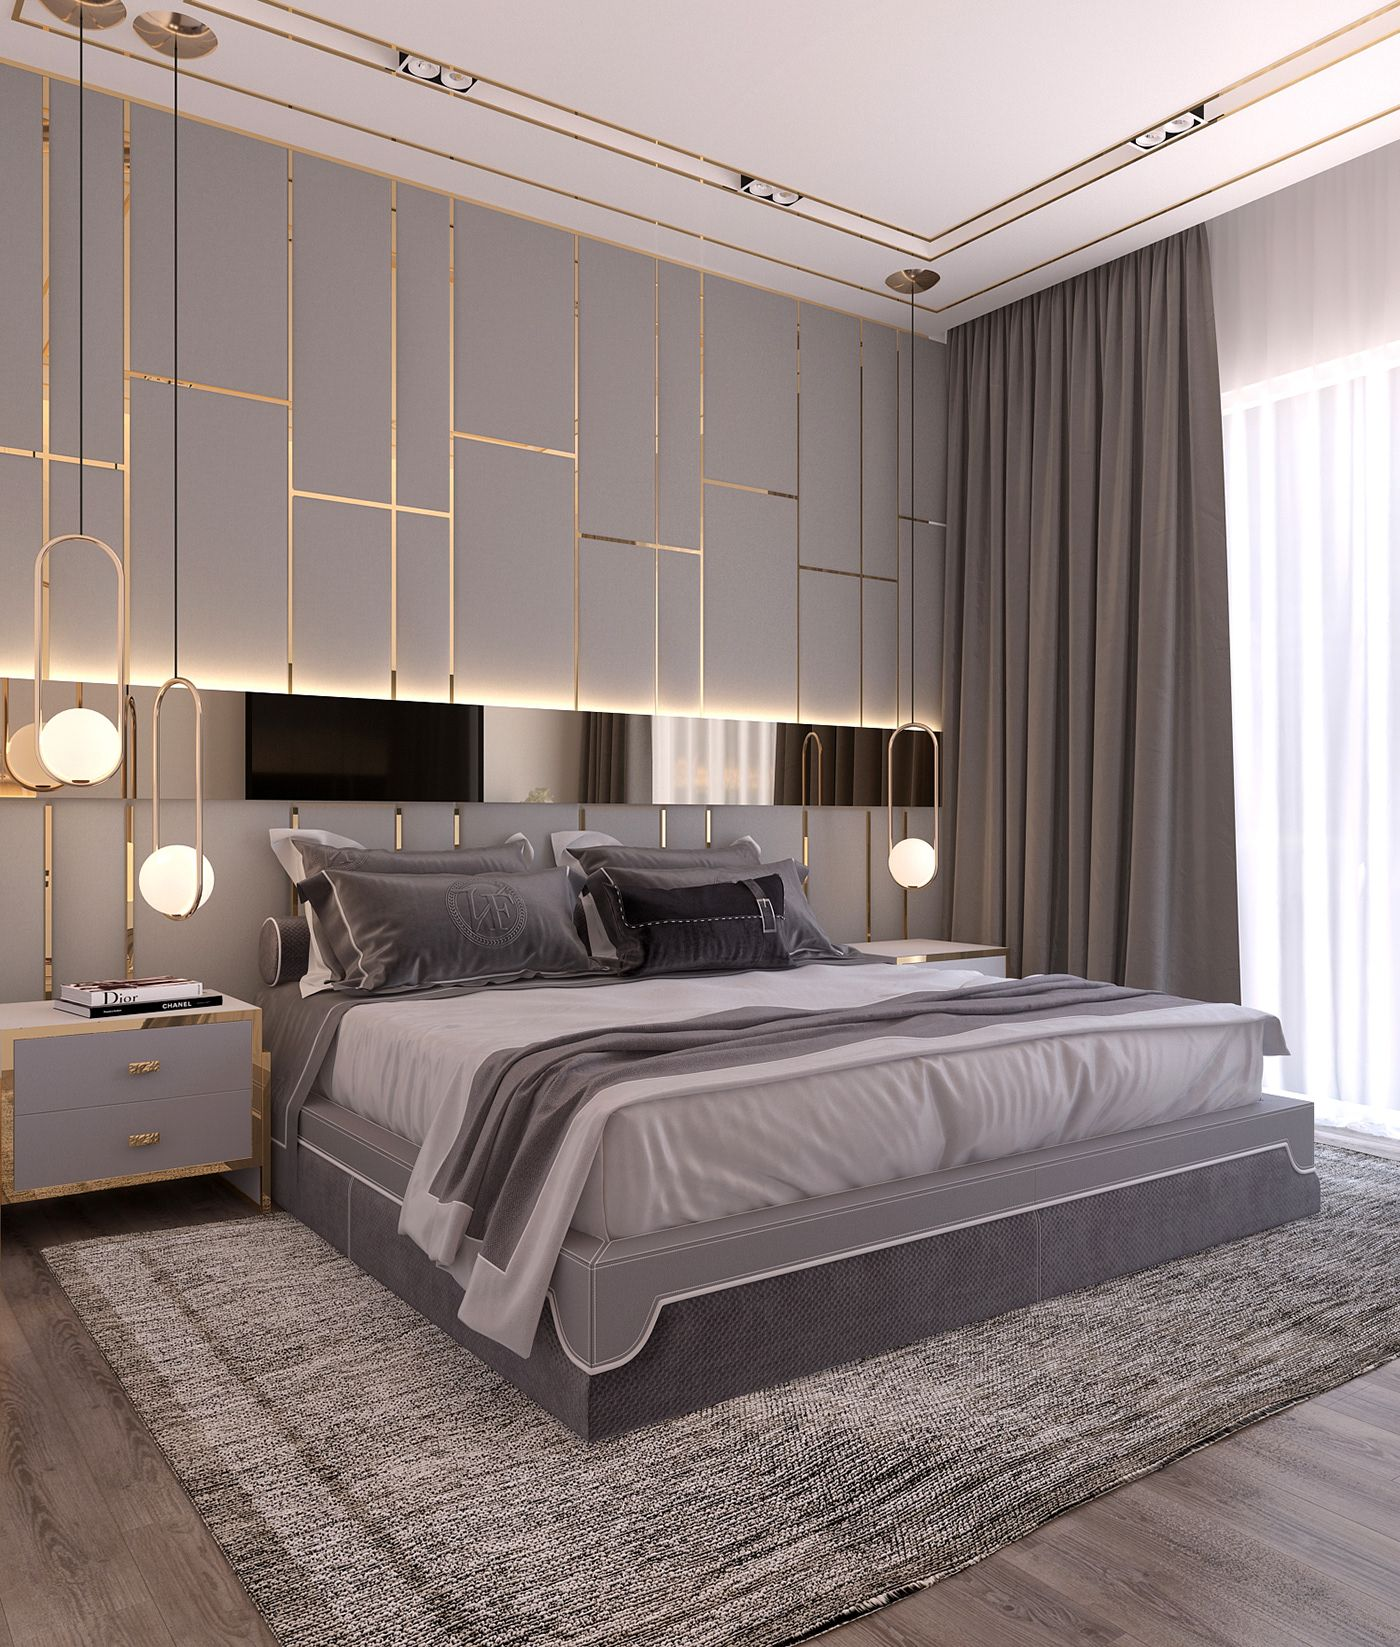 Modern Style Bedroom Dubai Project On Behance Modern Style